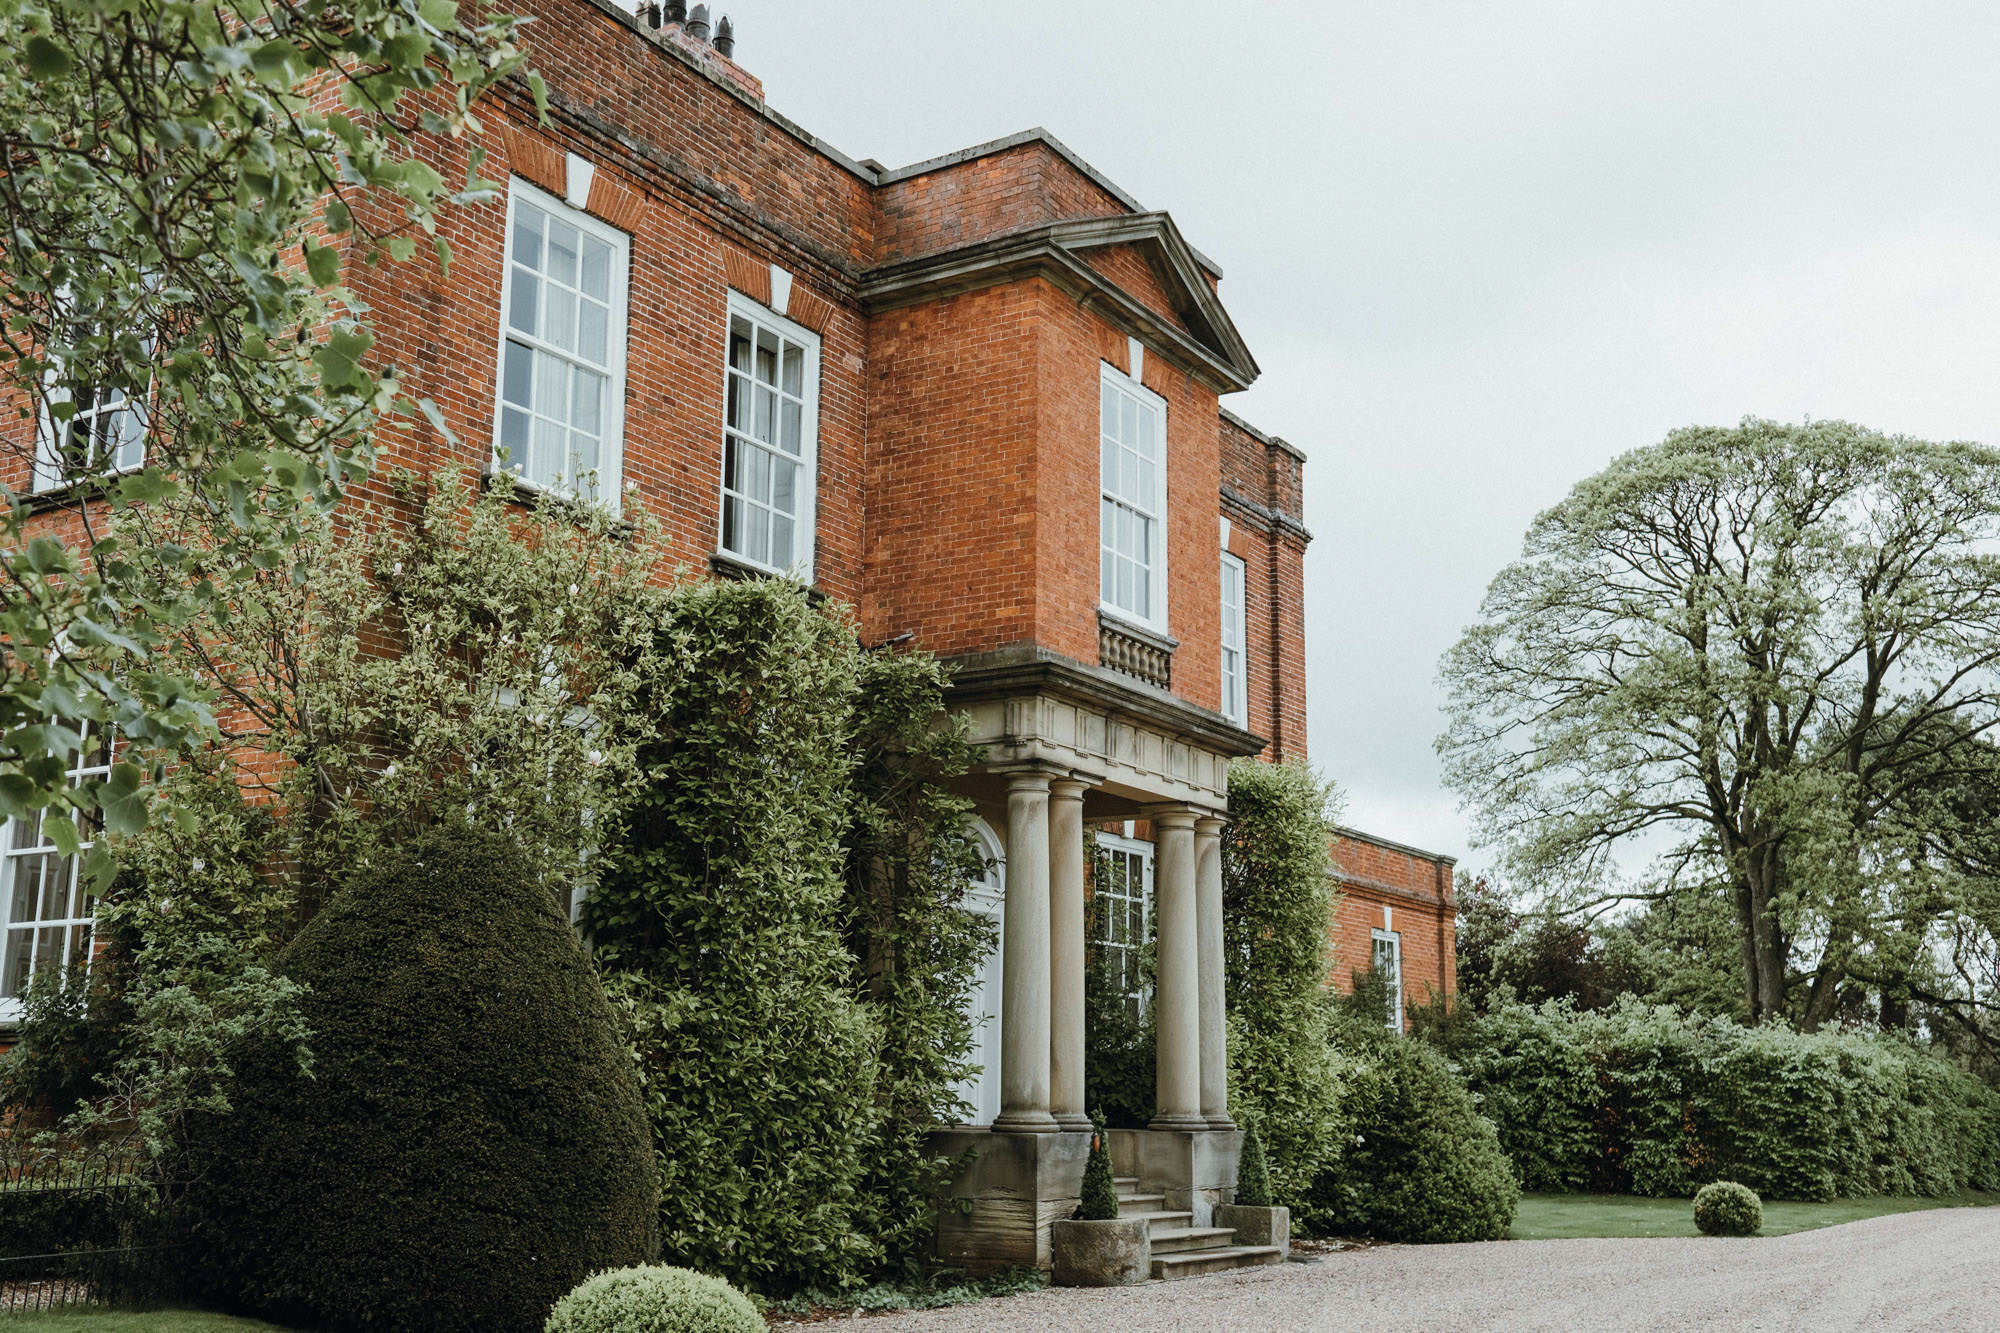 Iscoyd park - Country House Wedding Venue in Shropshire